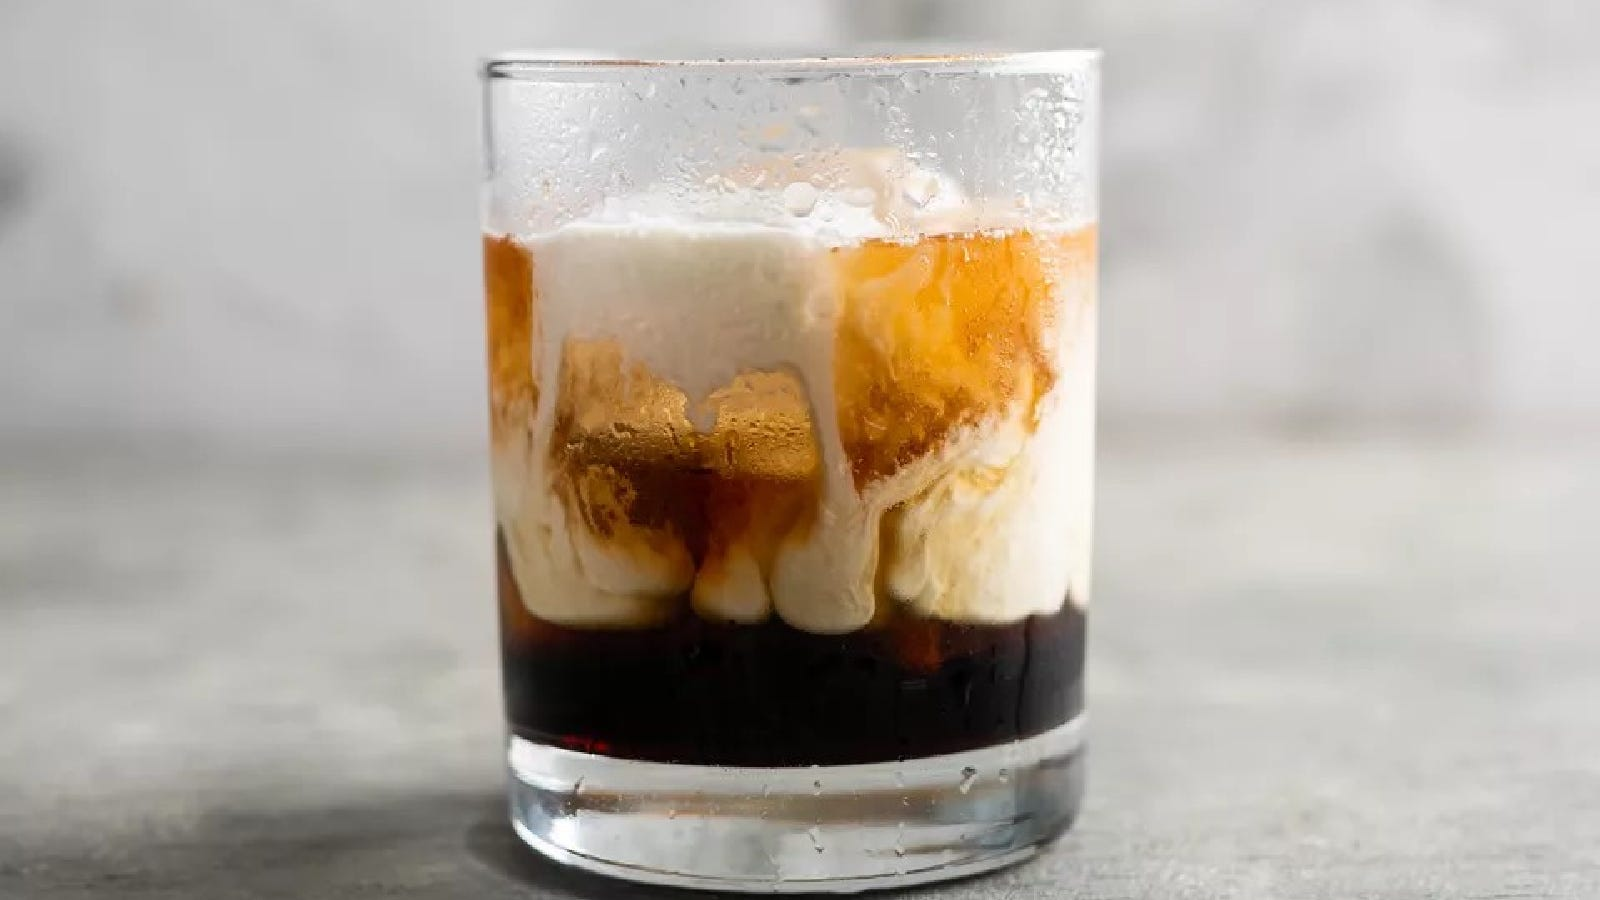 A short rocks glass with one large ice cube, filled with a recently poured white Russian cocktail.